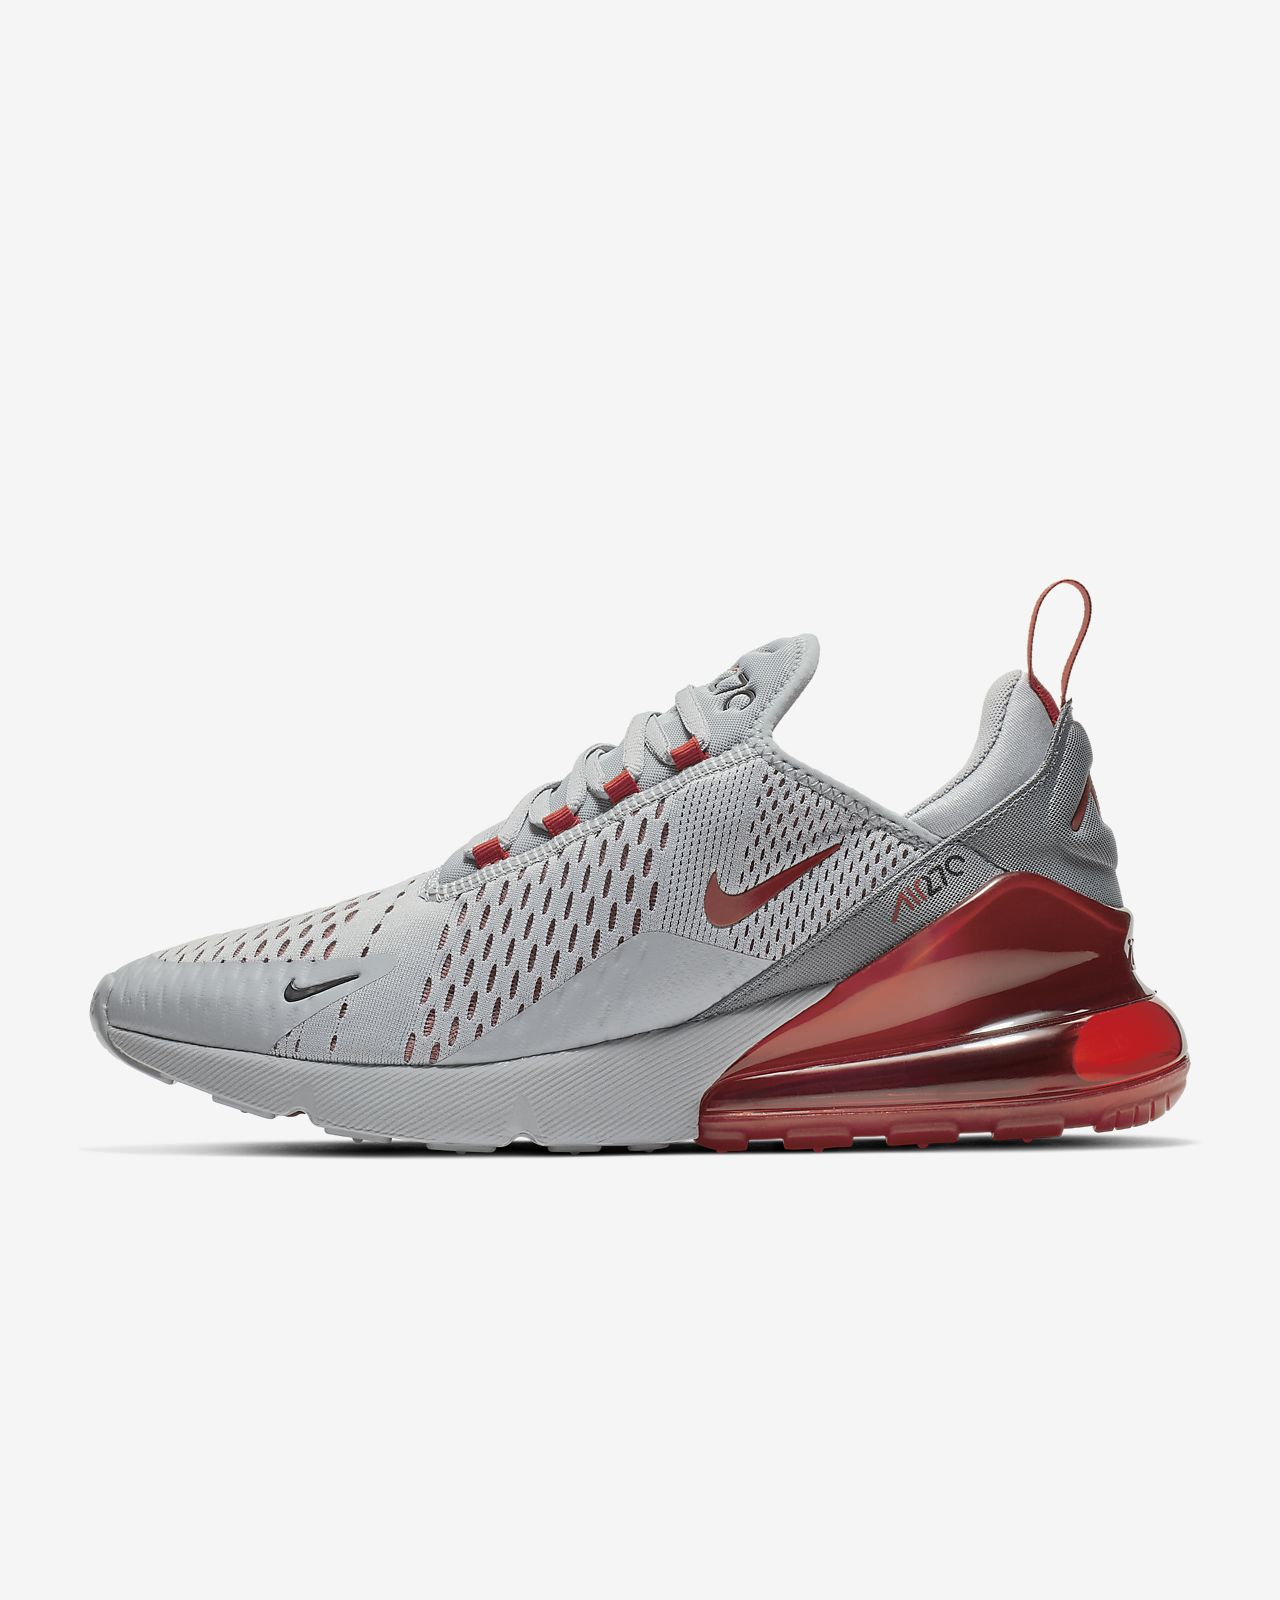 7cc7213242f8 Nike Air Max 270 Men s Shoe. Nike.com IN